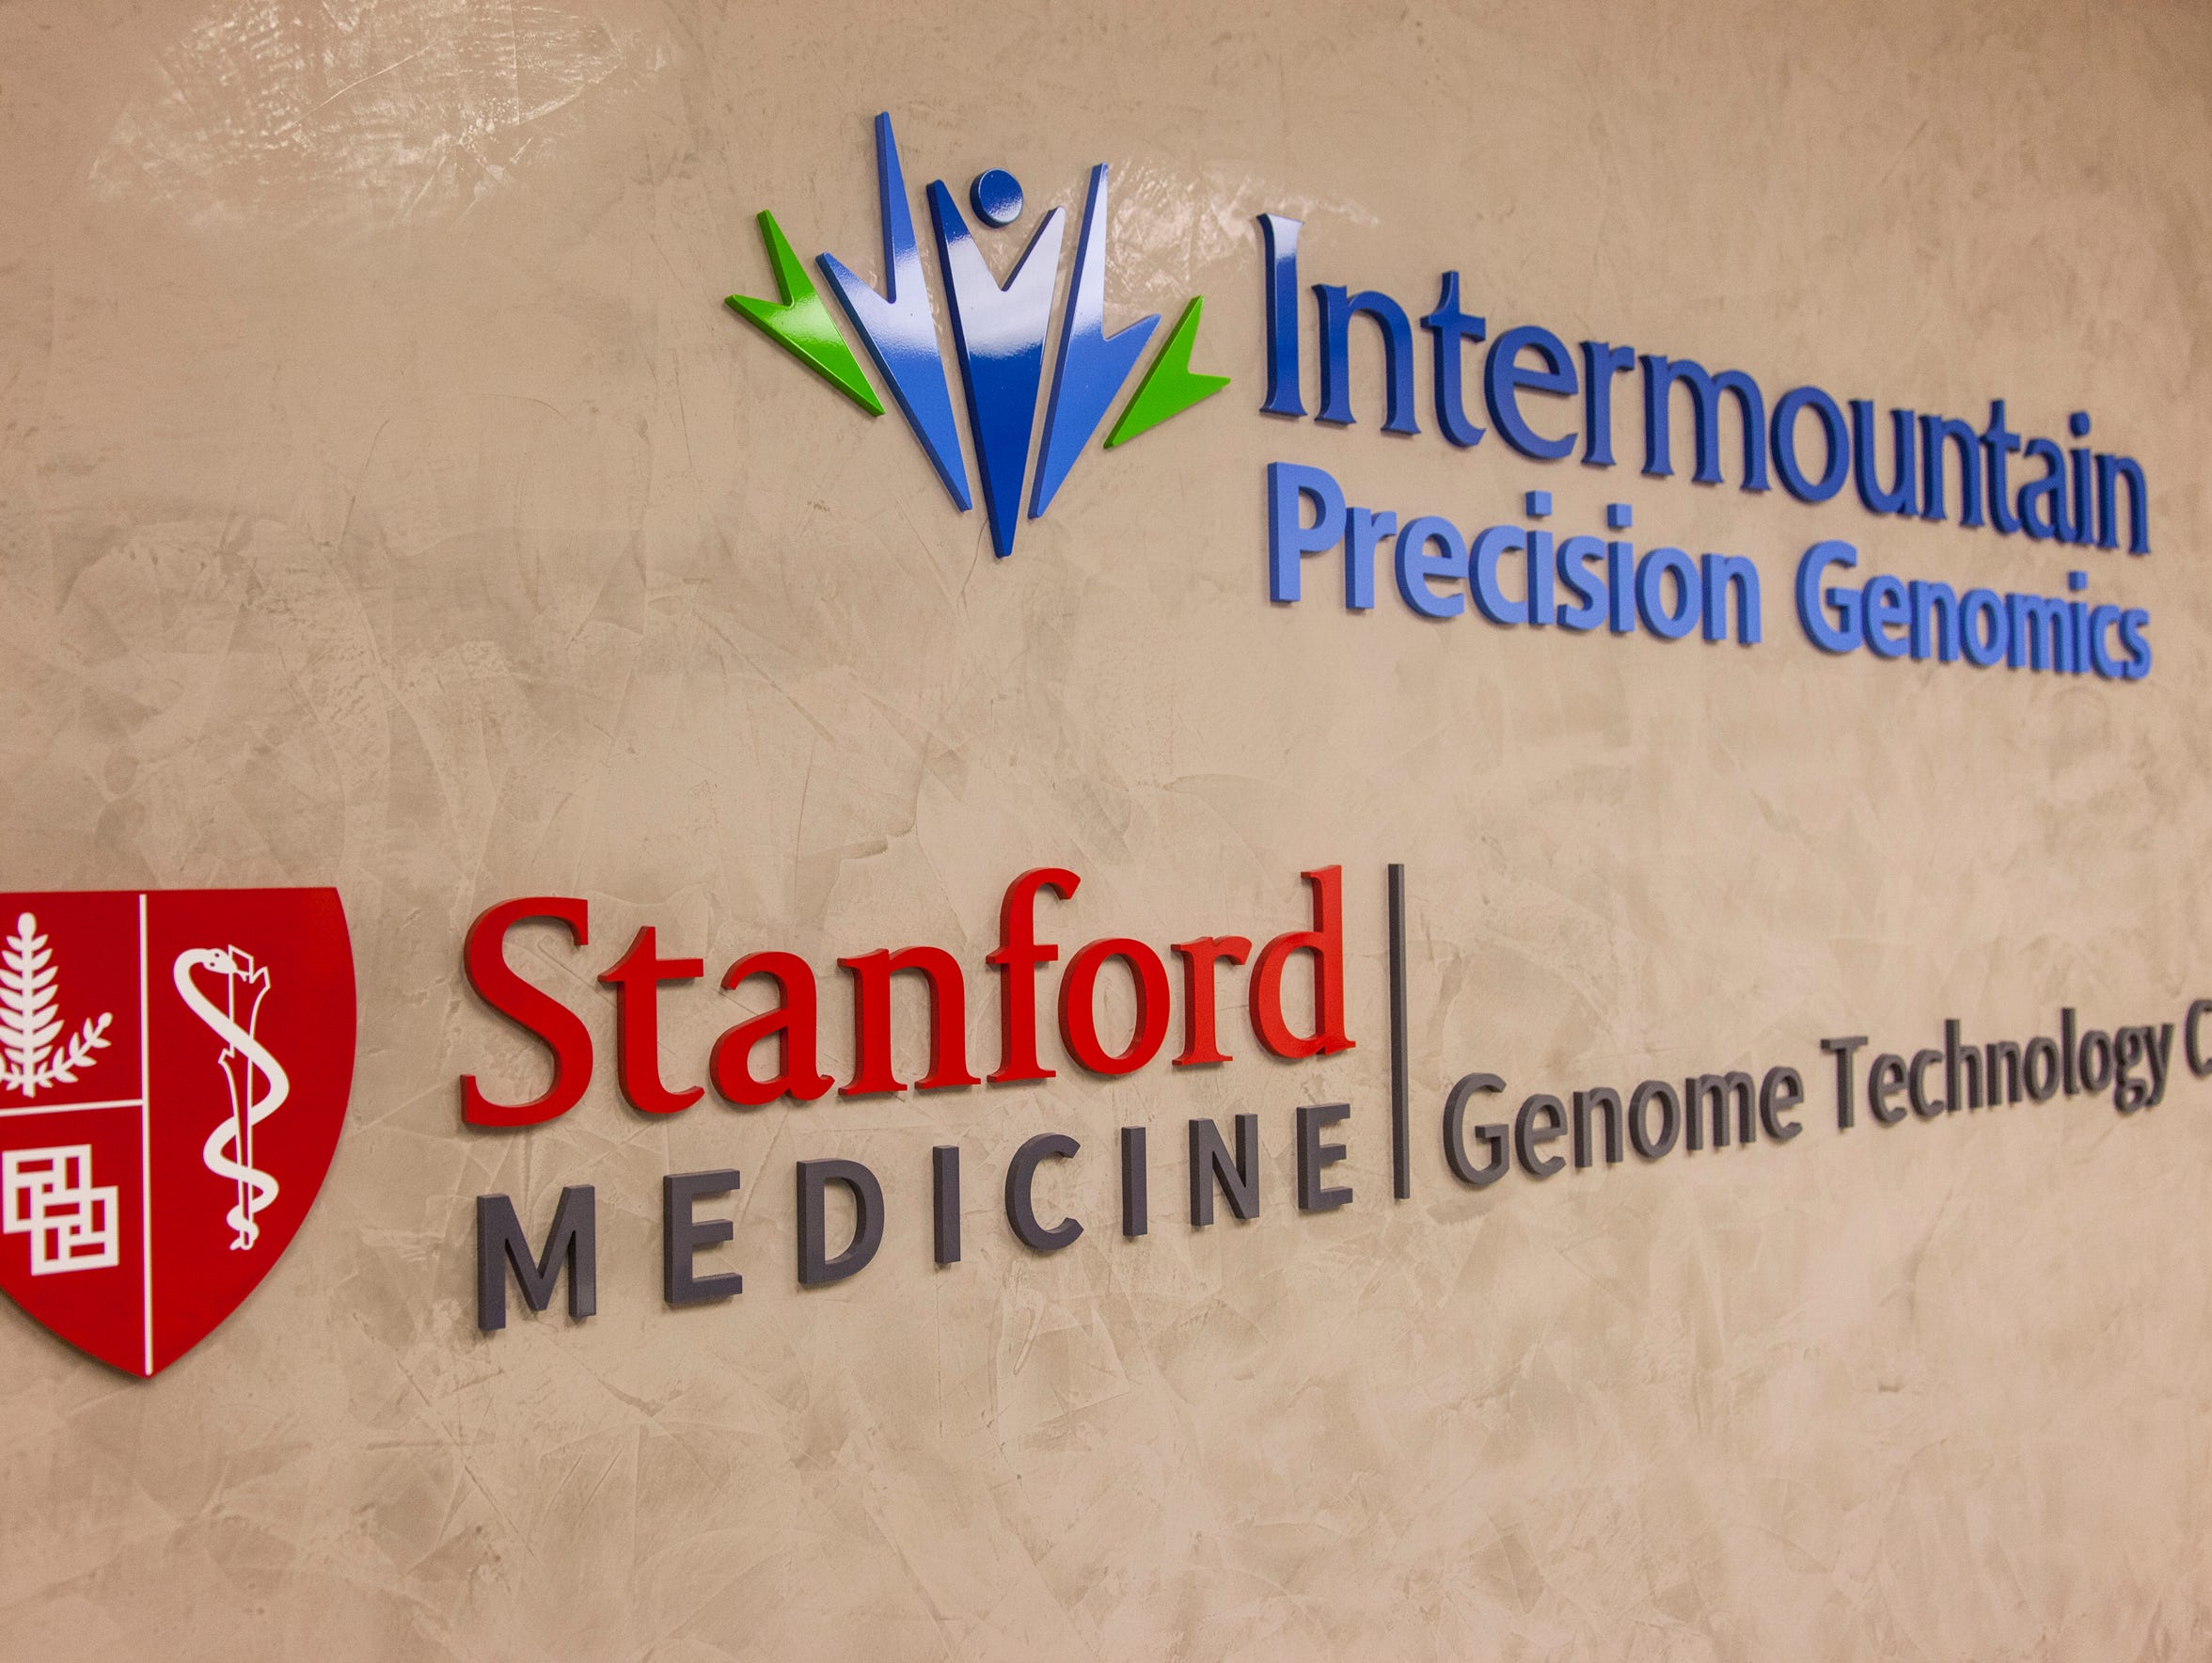 Intermountain Precision Genomics has partnered with